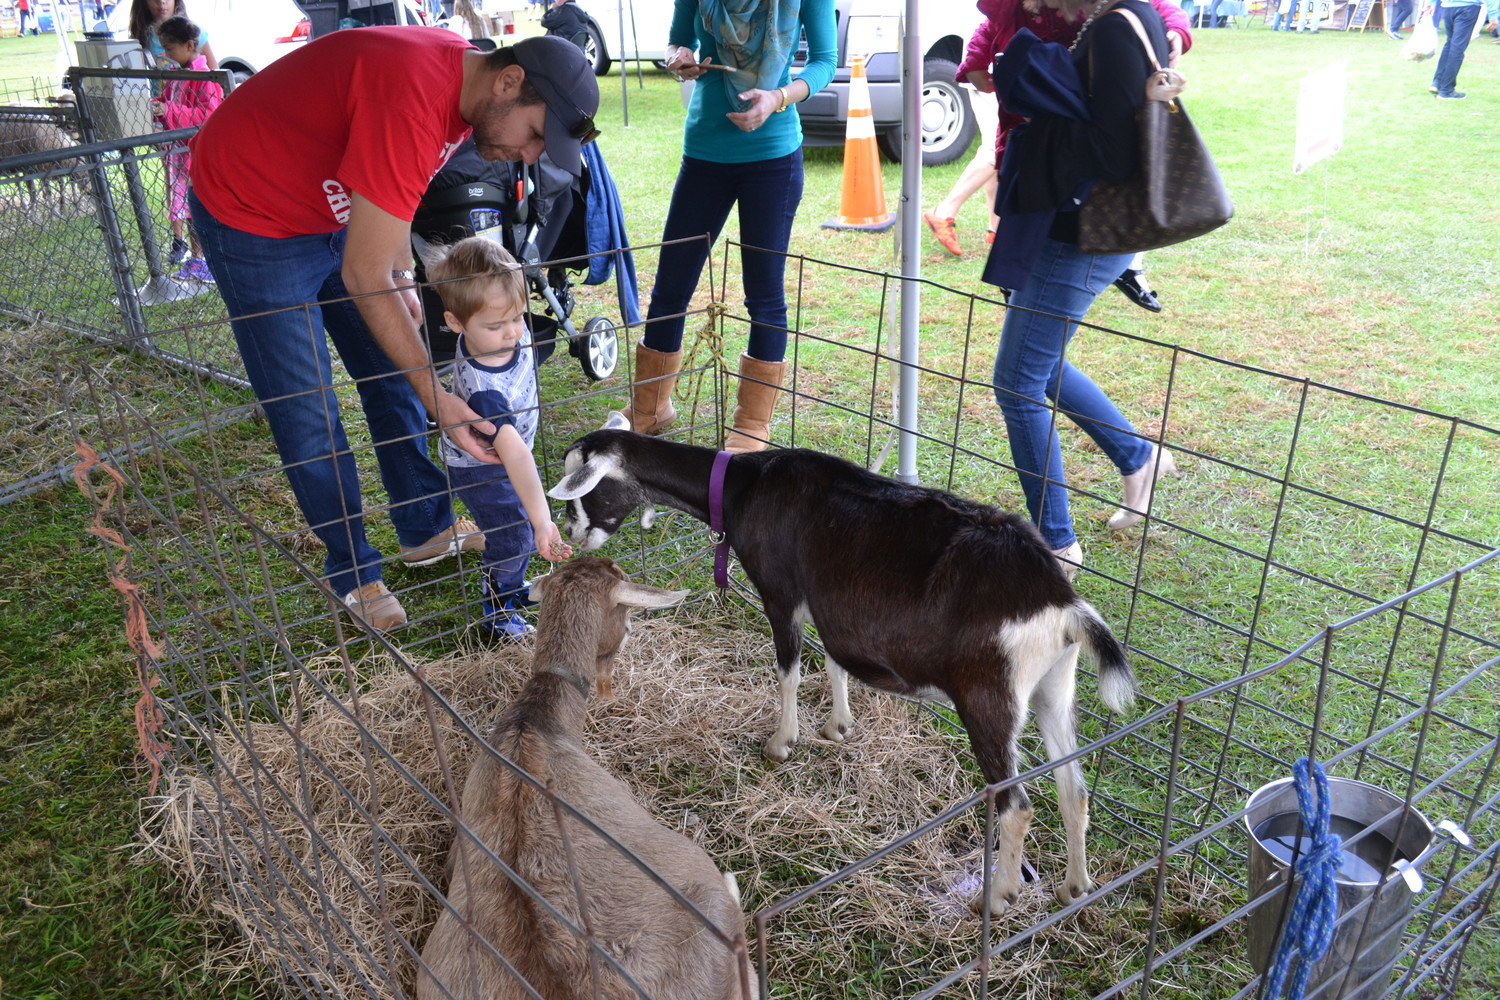 A little one gets up close and personal with a few animals in the petting zoo.